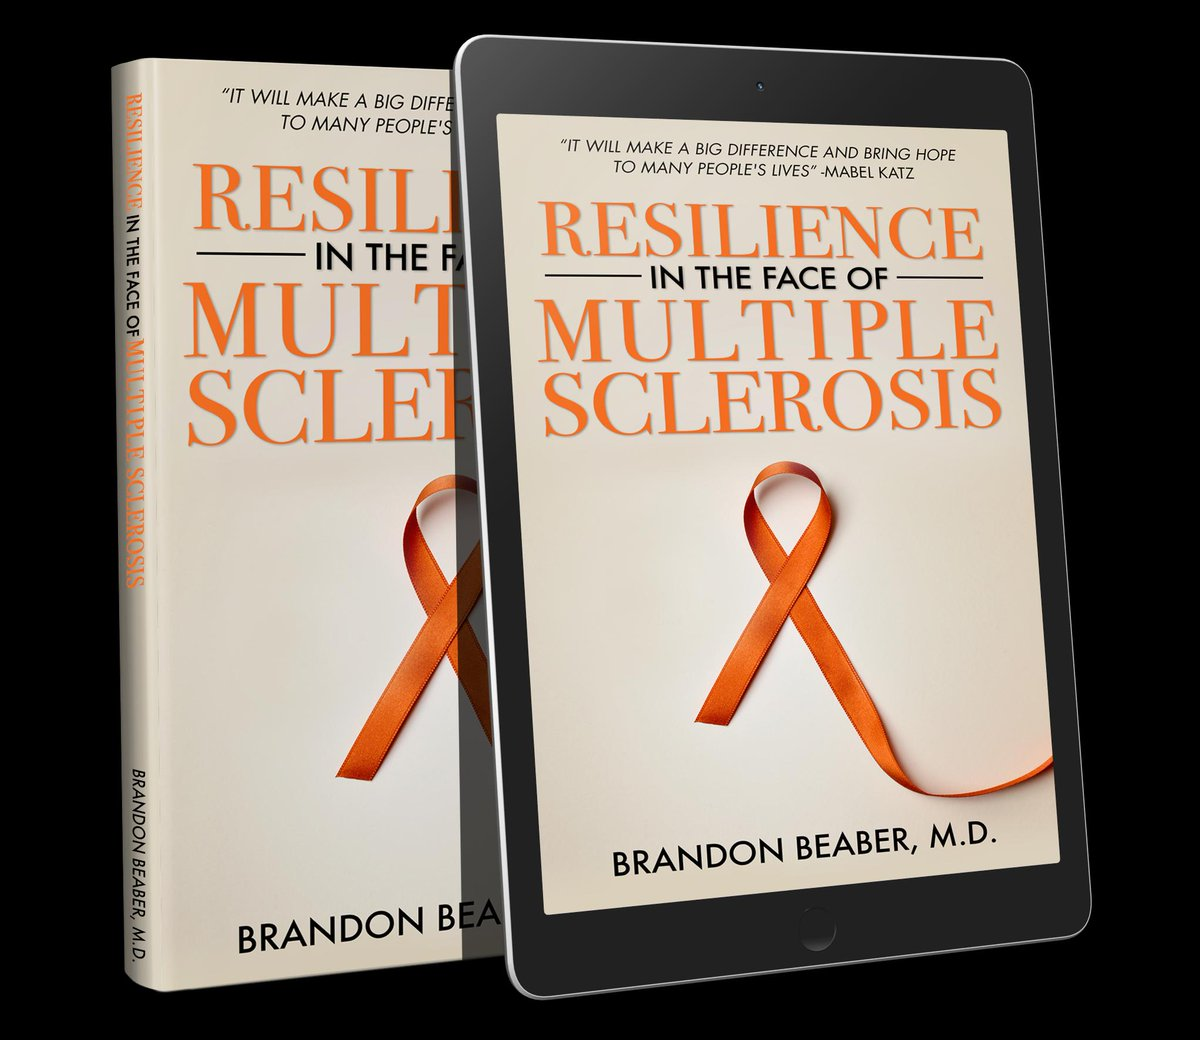 Resilience in the Face of Multiple Sclerosis